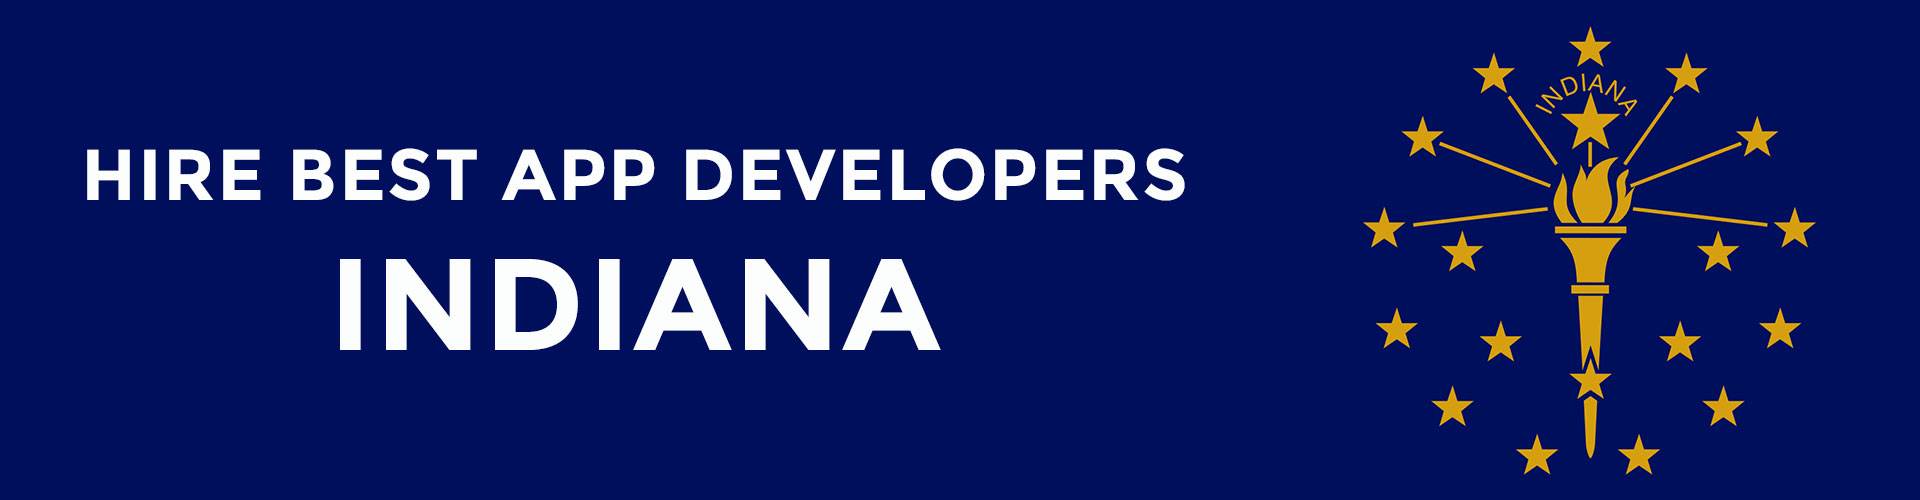 indiana app developers